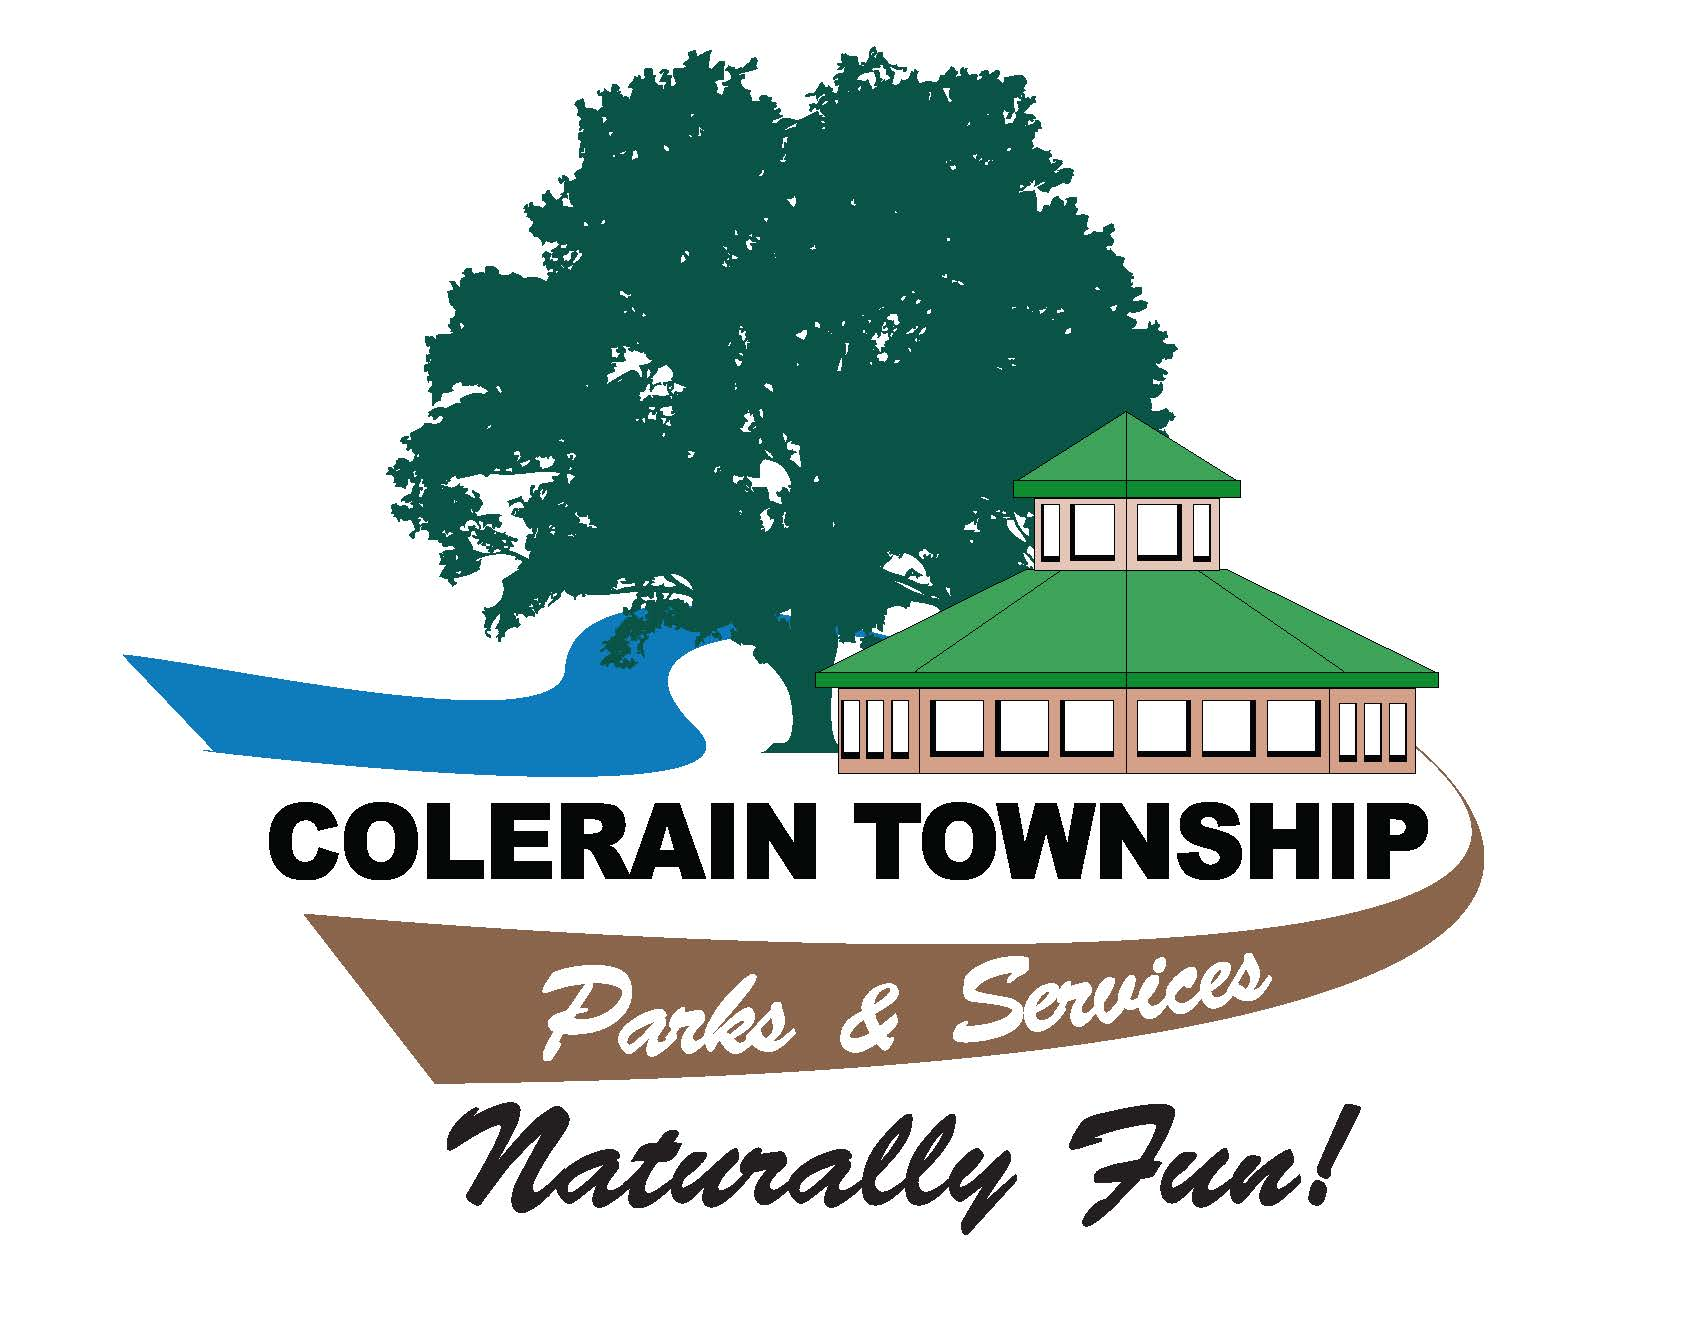 Colerain Township Parks and Services - Naturally Fun!